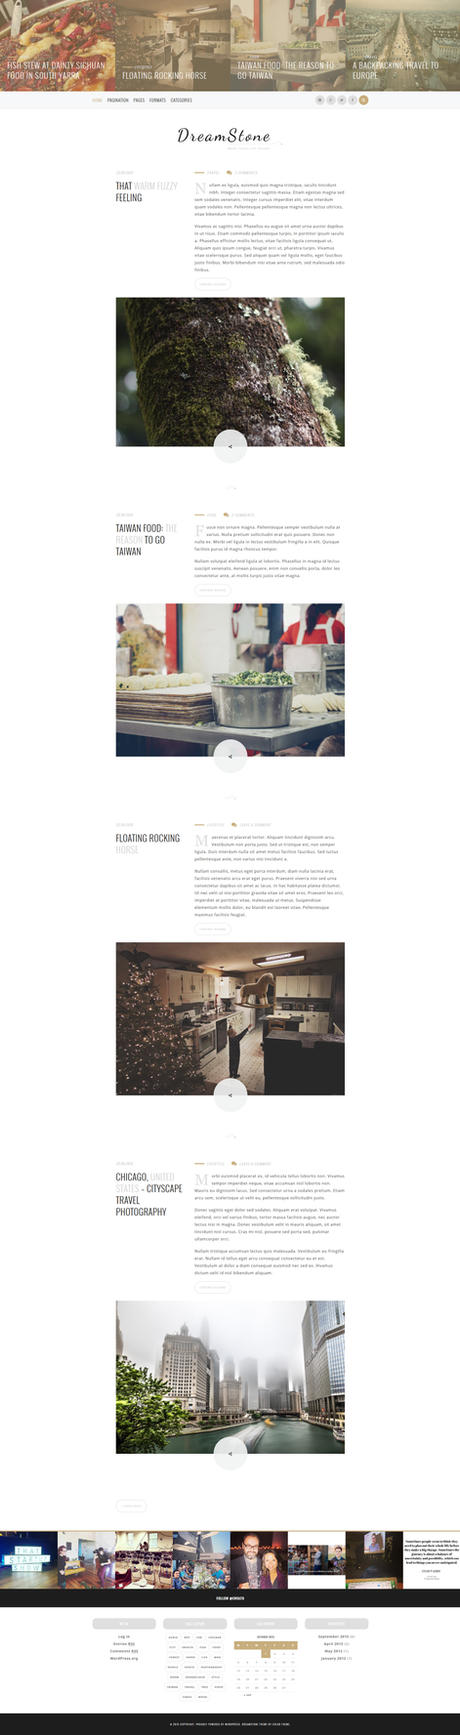 DreamStone - Personal WordPress Blog Theme by ZERGEV